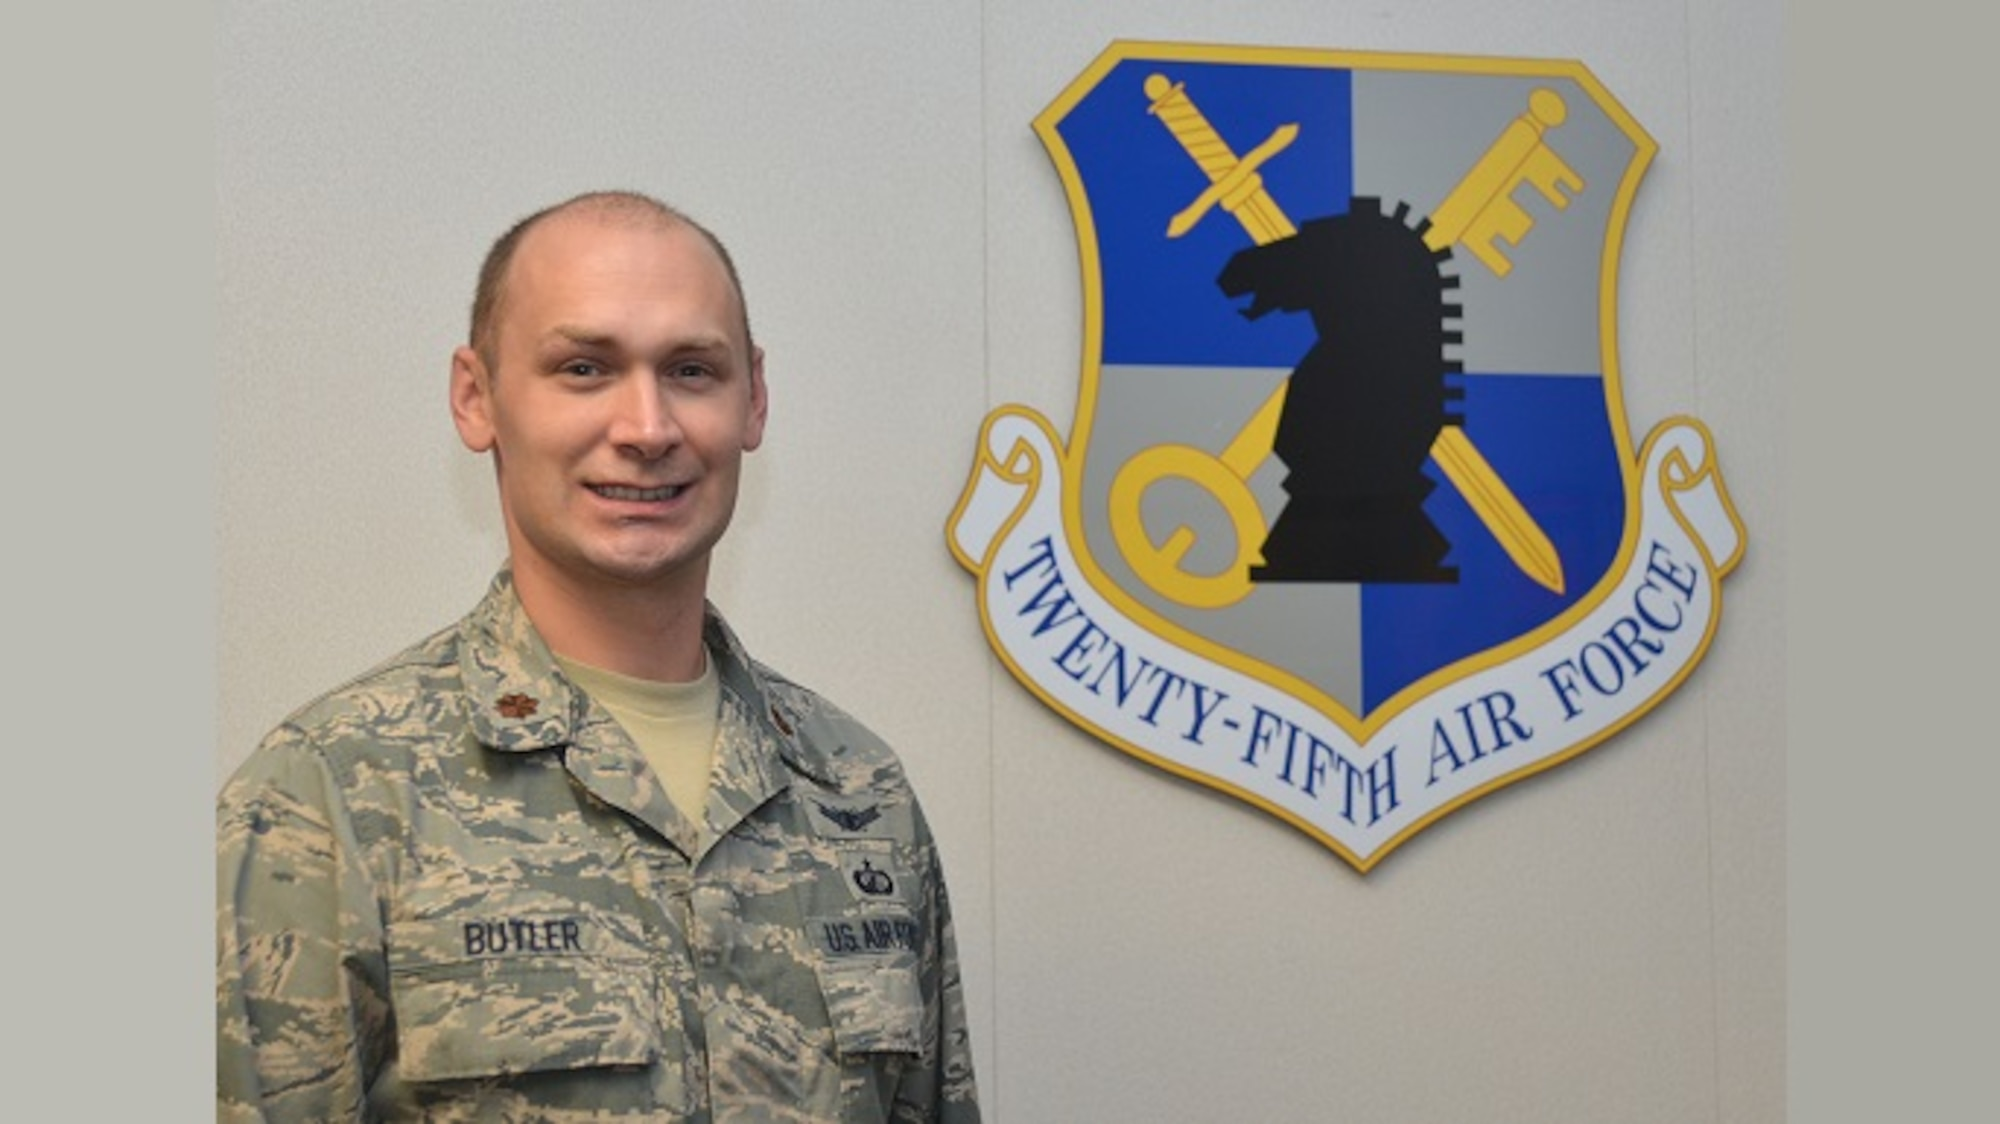 From high-risk youth to national award winner – One Airman's inspirational journey